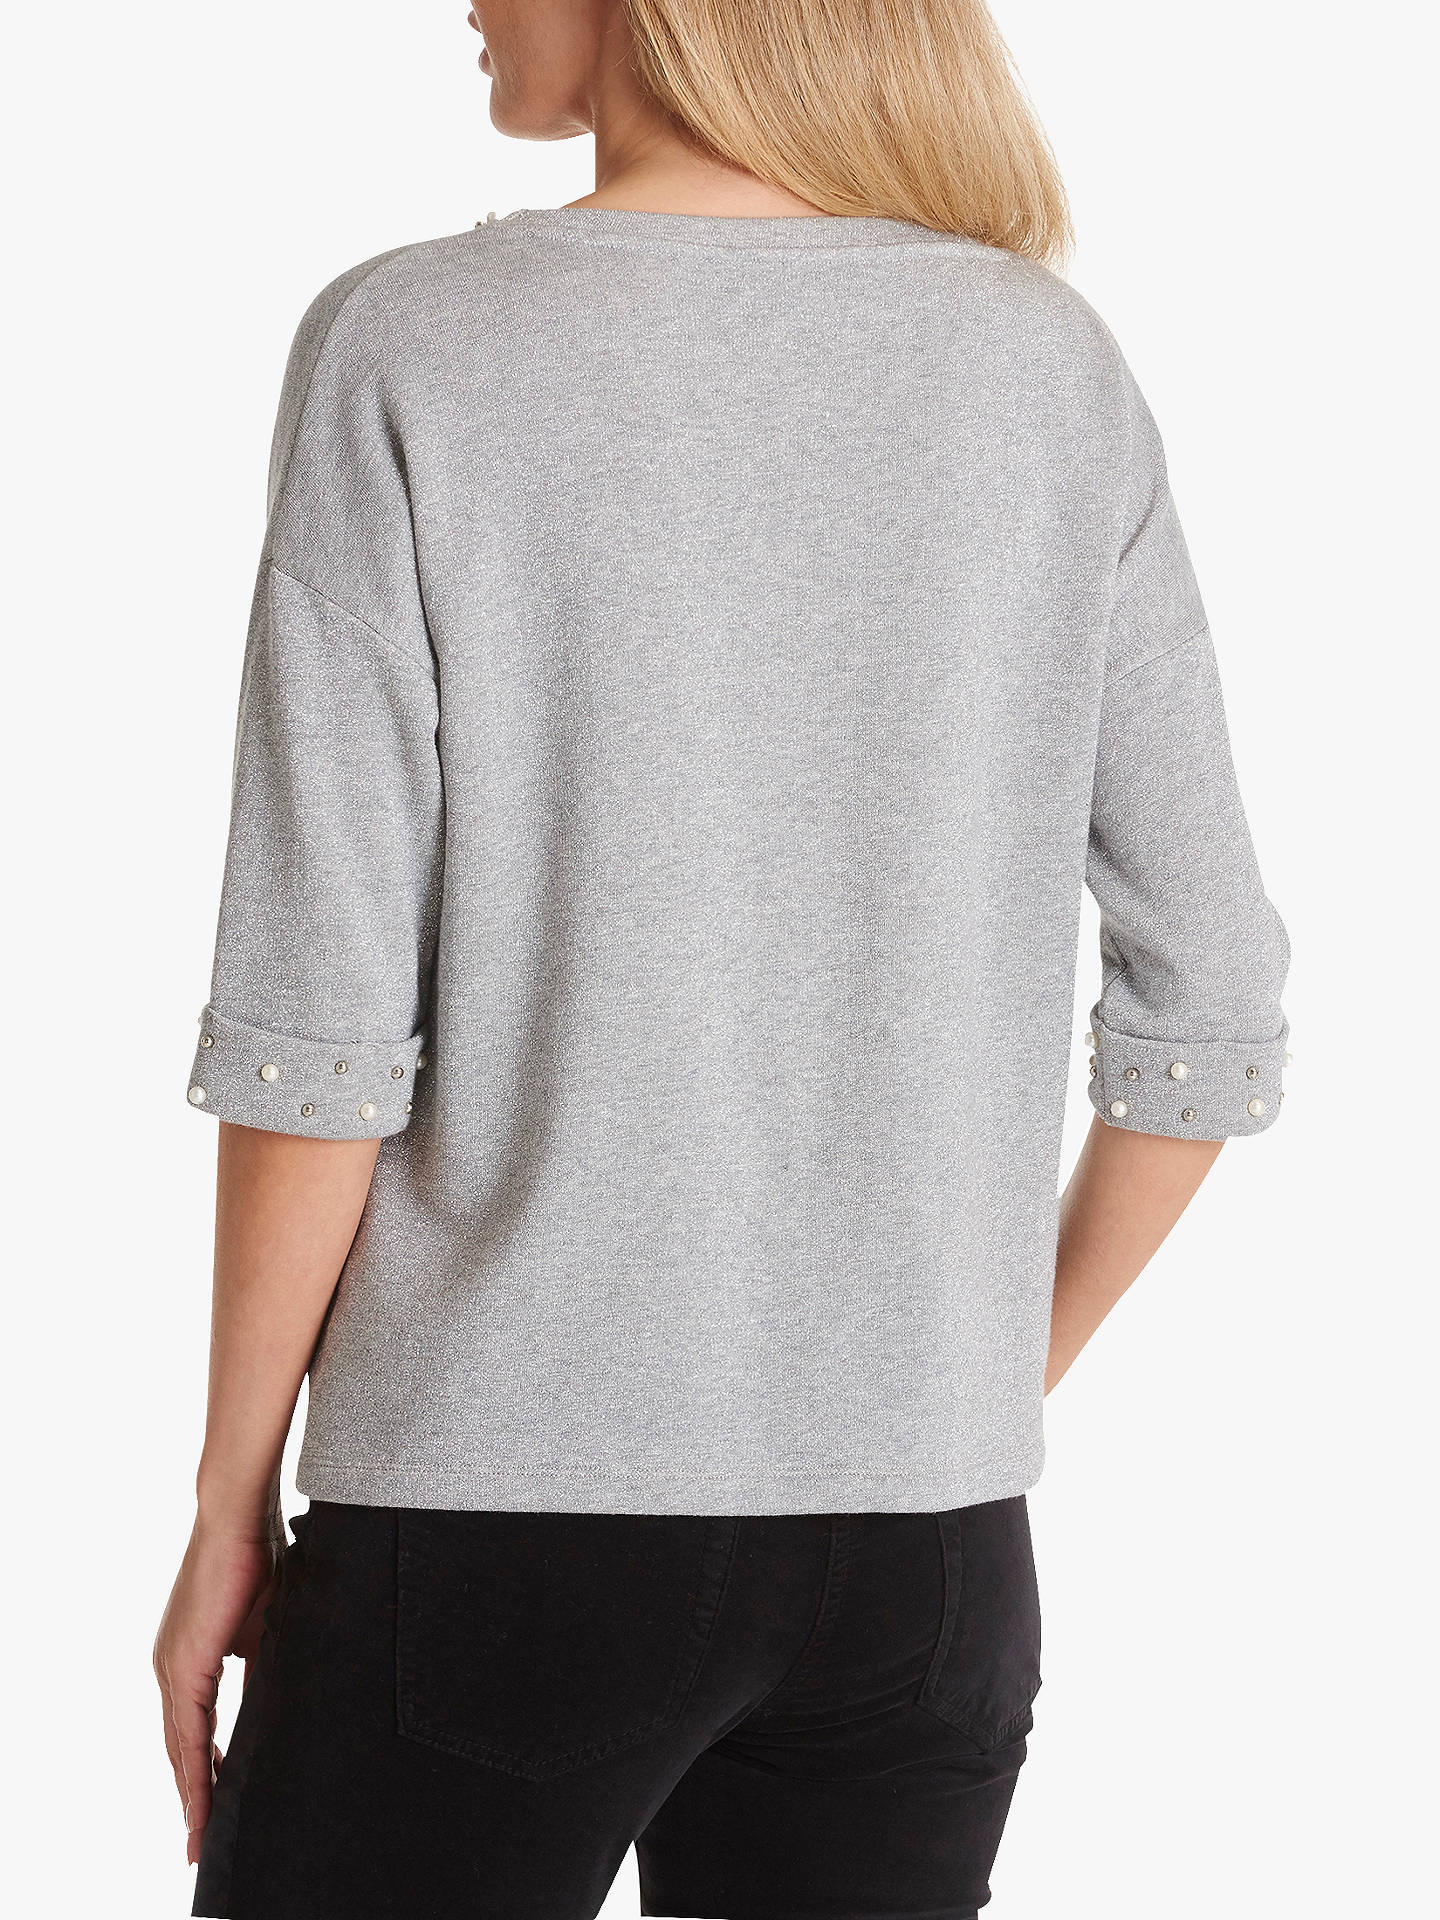 BuyBetty Barclay Metallic Knit Jumper, Grey Melange, 12 Online at johnlewis.com